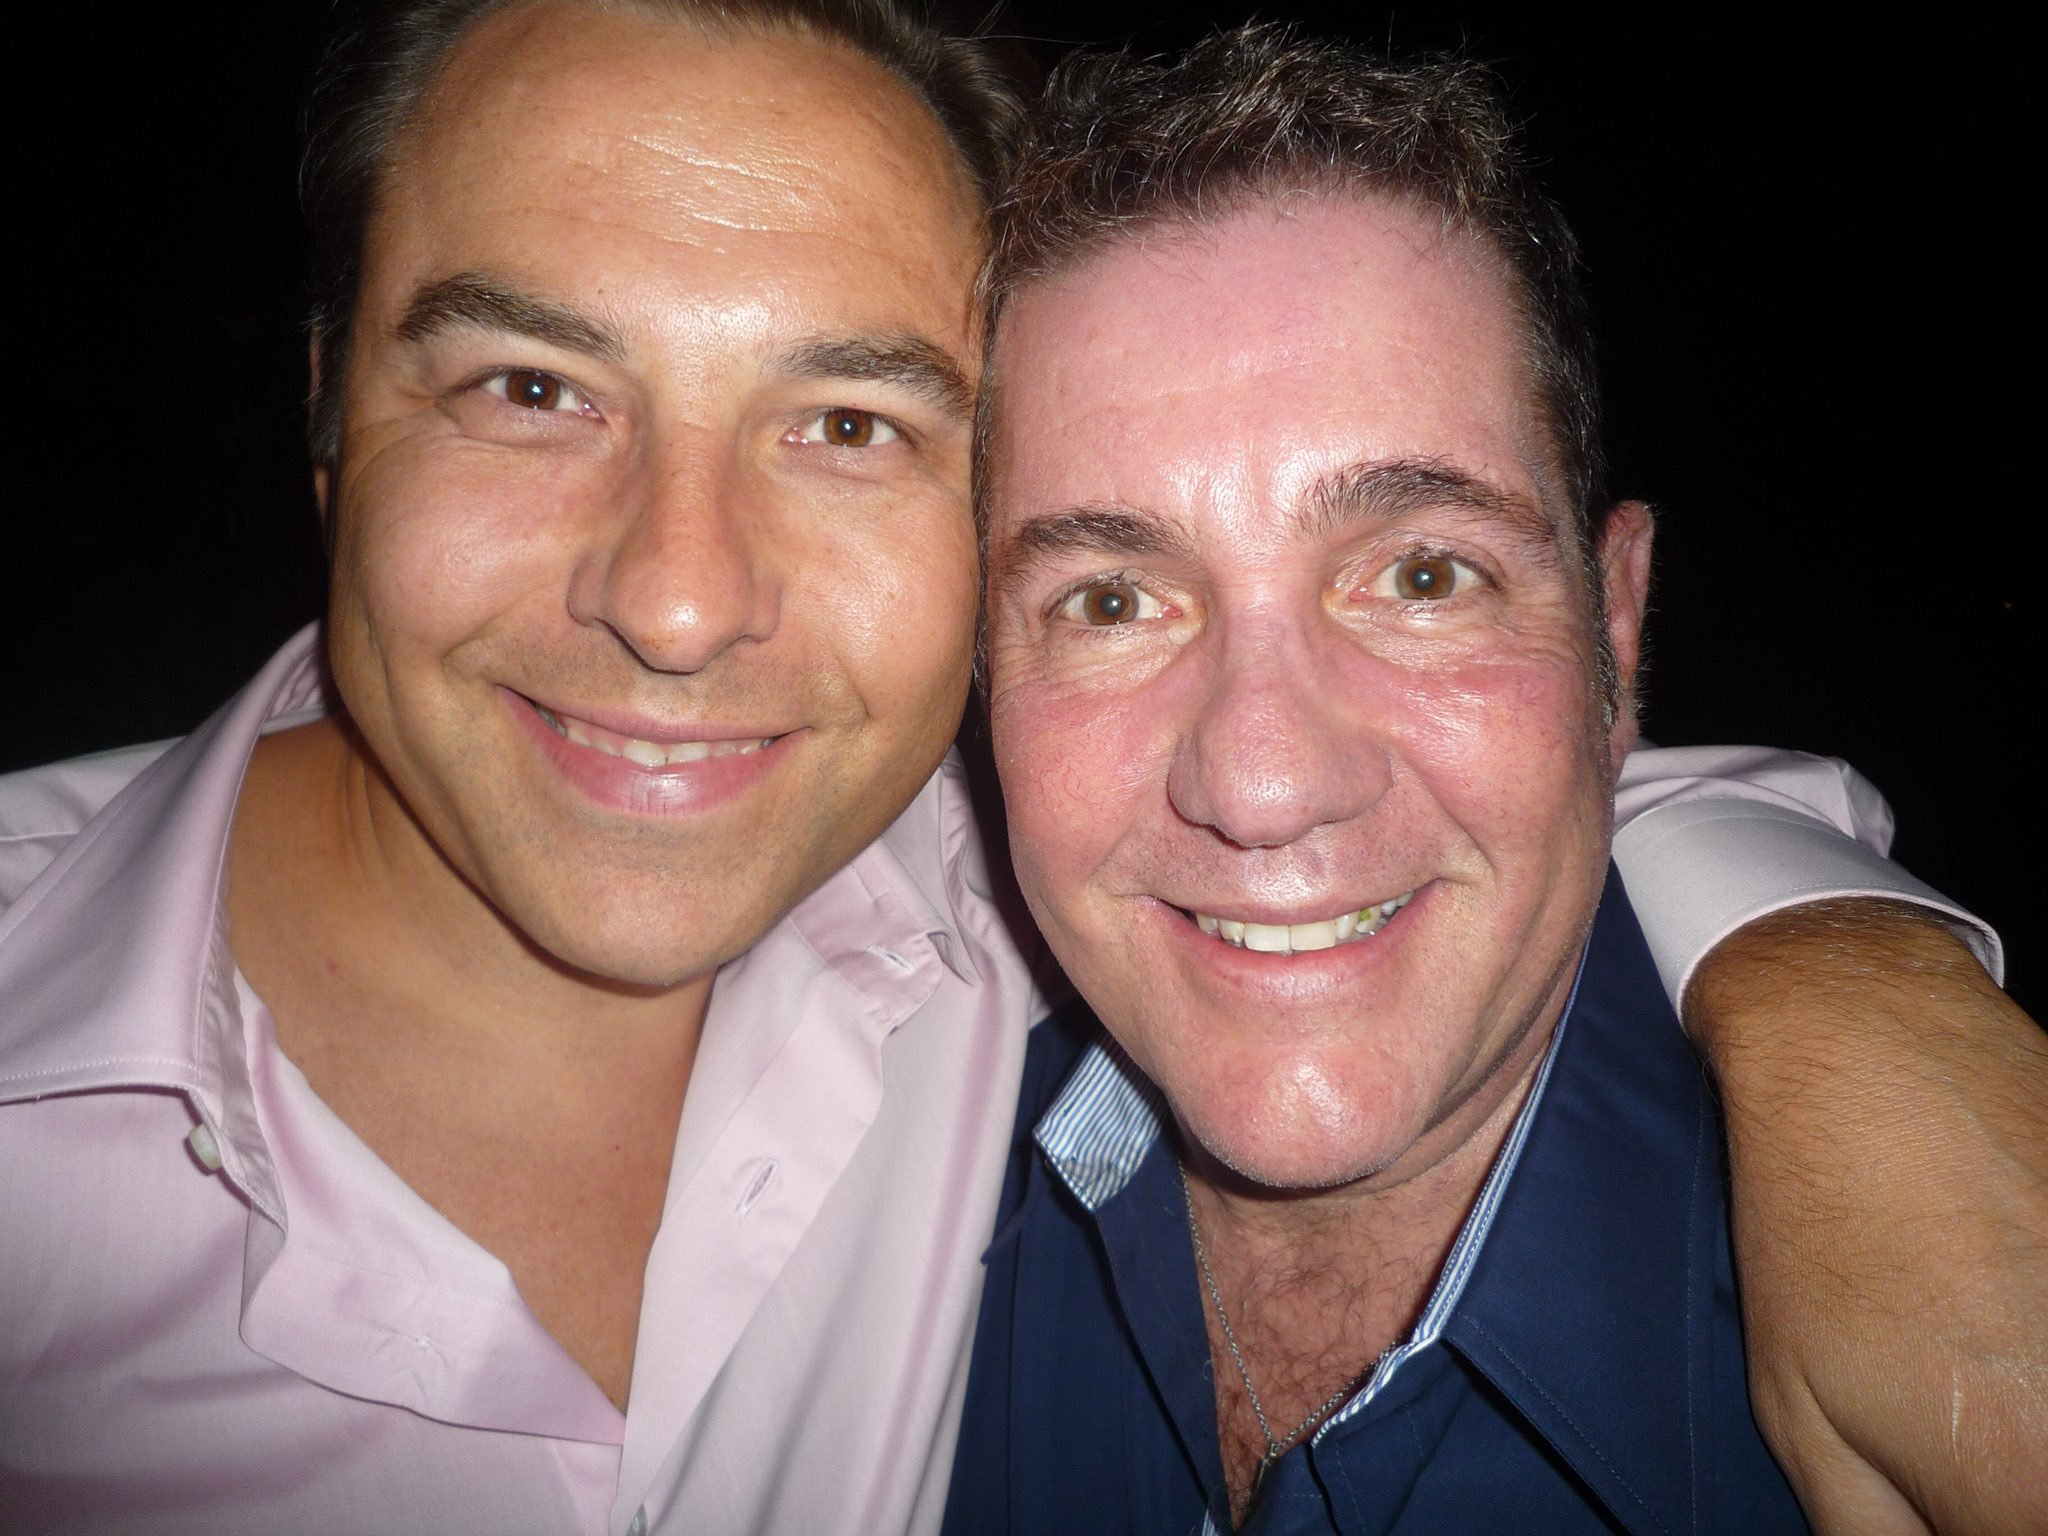 David Walliams admits he 'always worried' about Dale Winton as 'his fame faded'